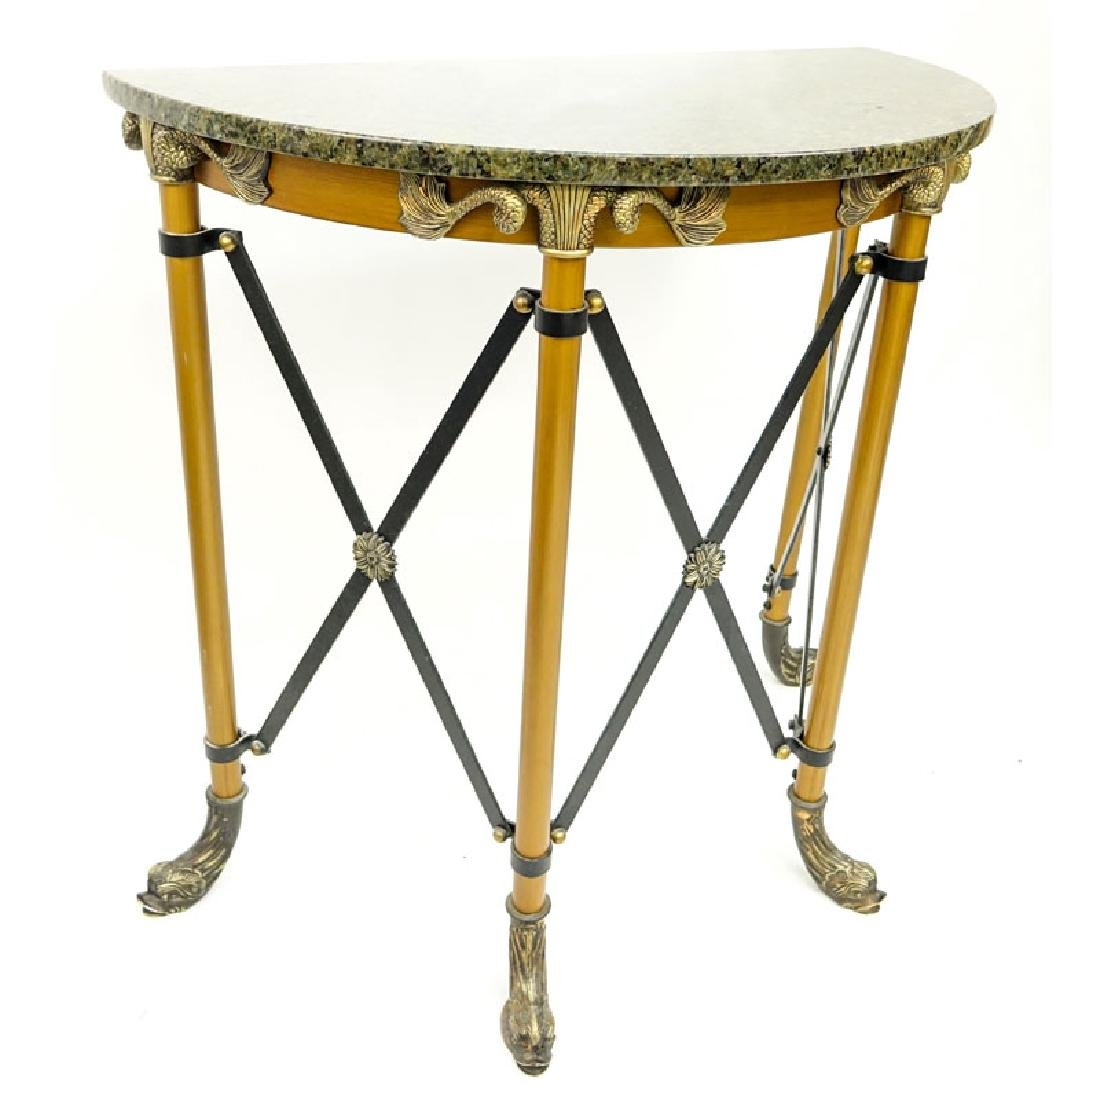 Modern Empire Style Metal and Brass Mounted Demi Lune - 3